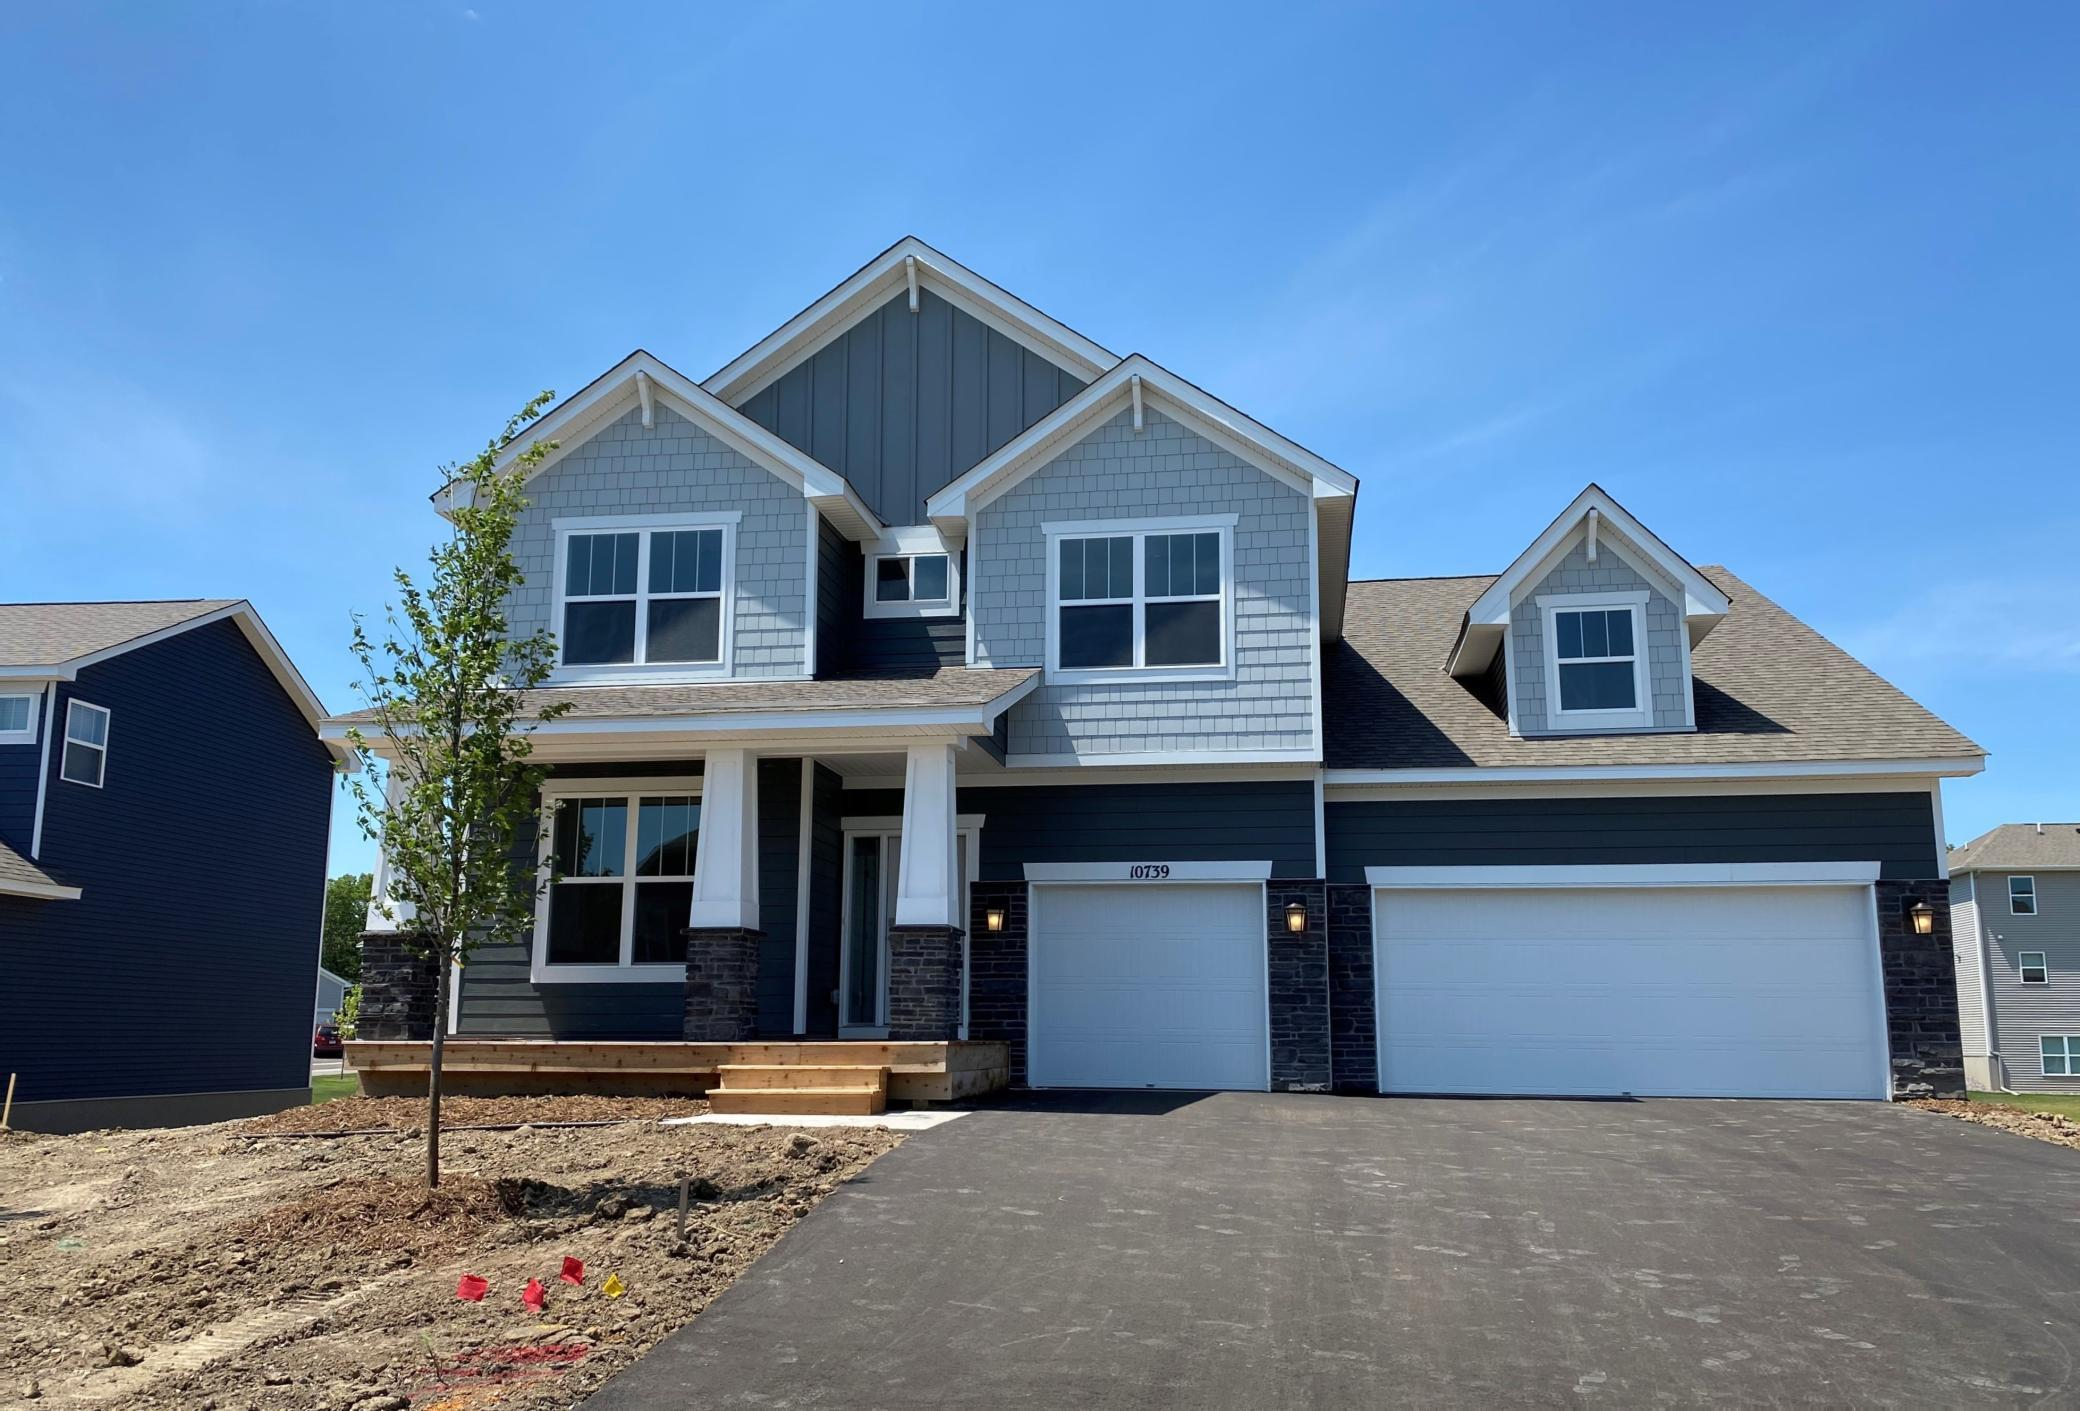 10739 Orchid N Property Photo - Maple Grove, MN real estate listing